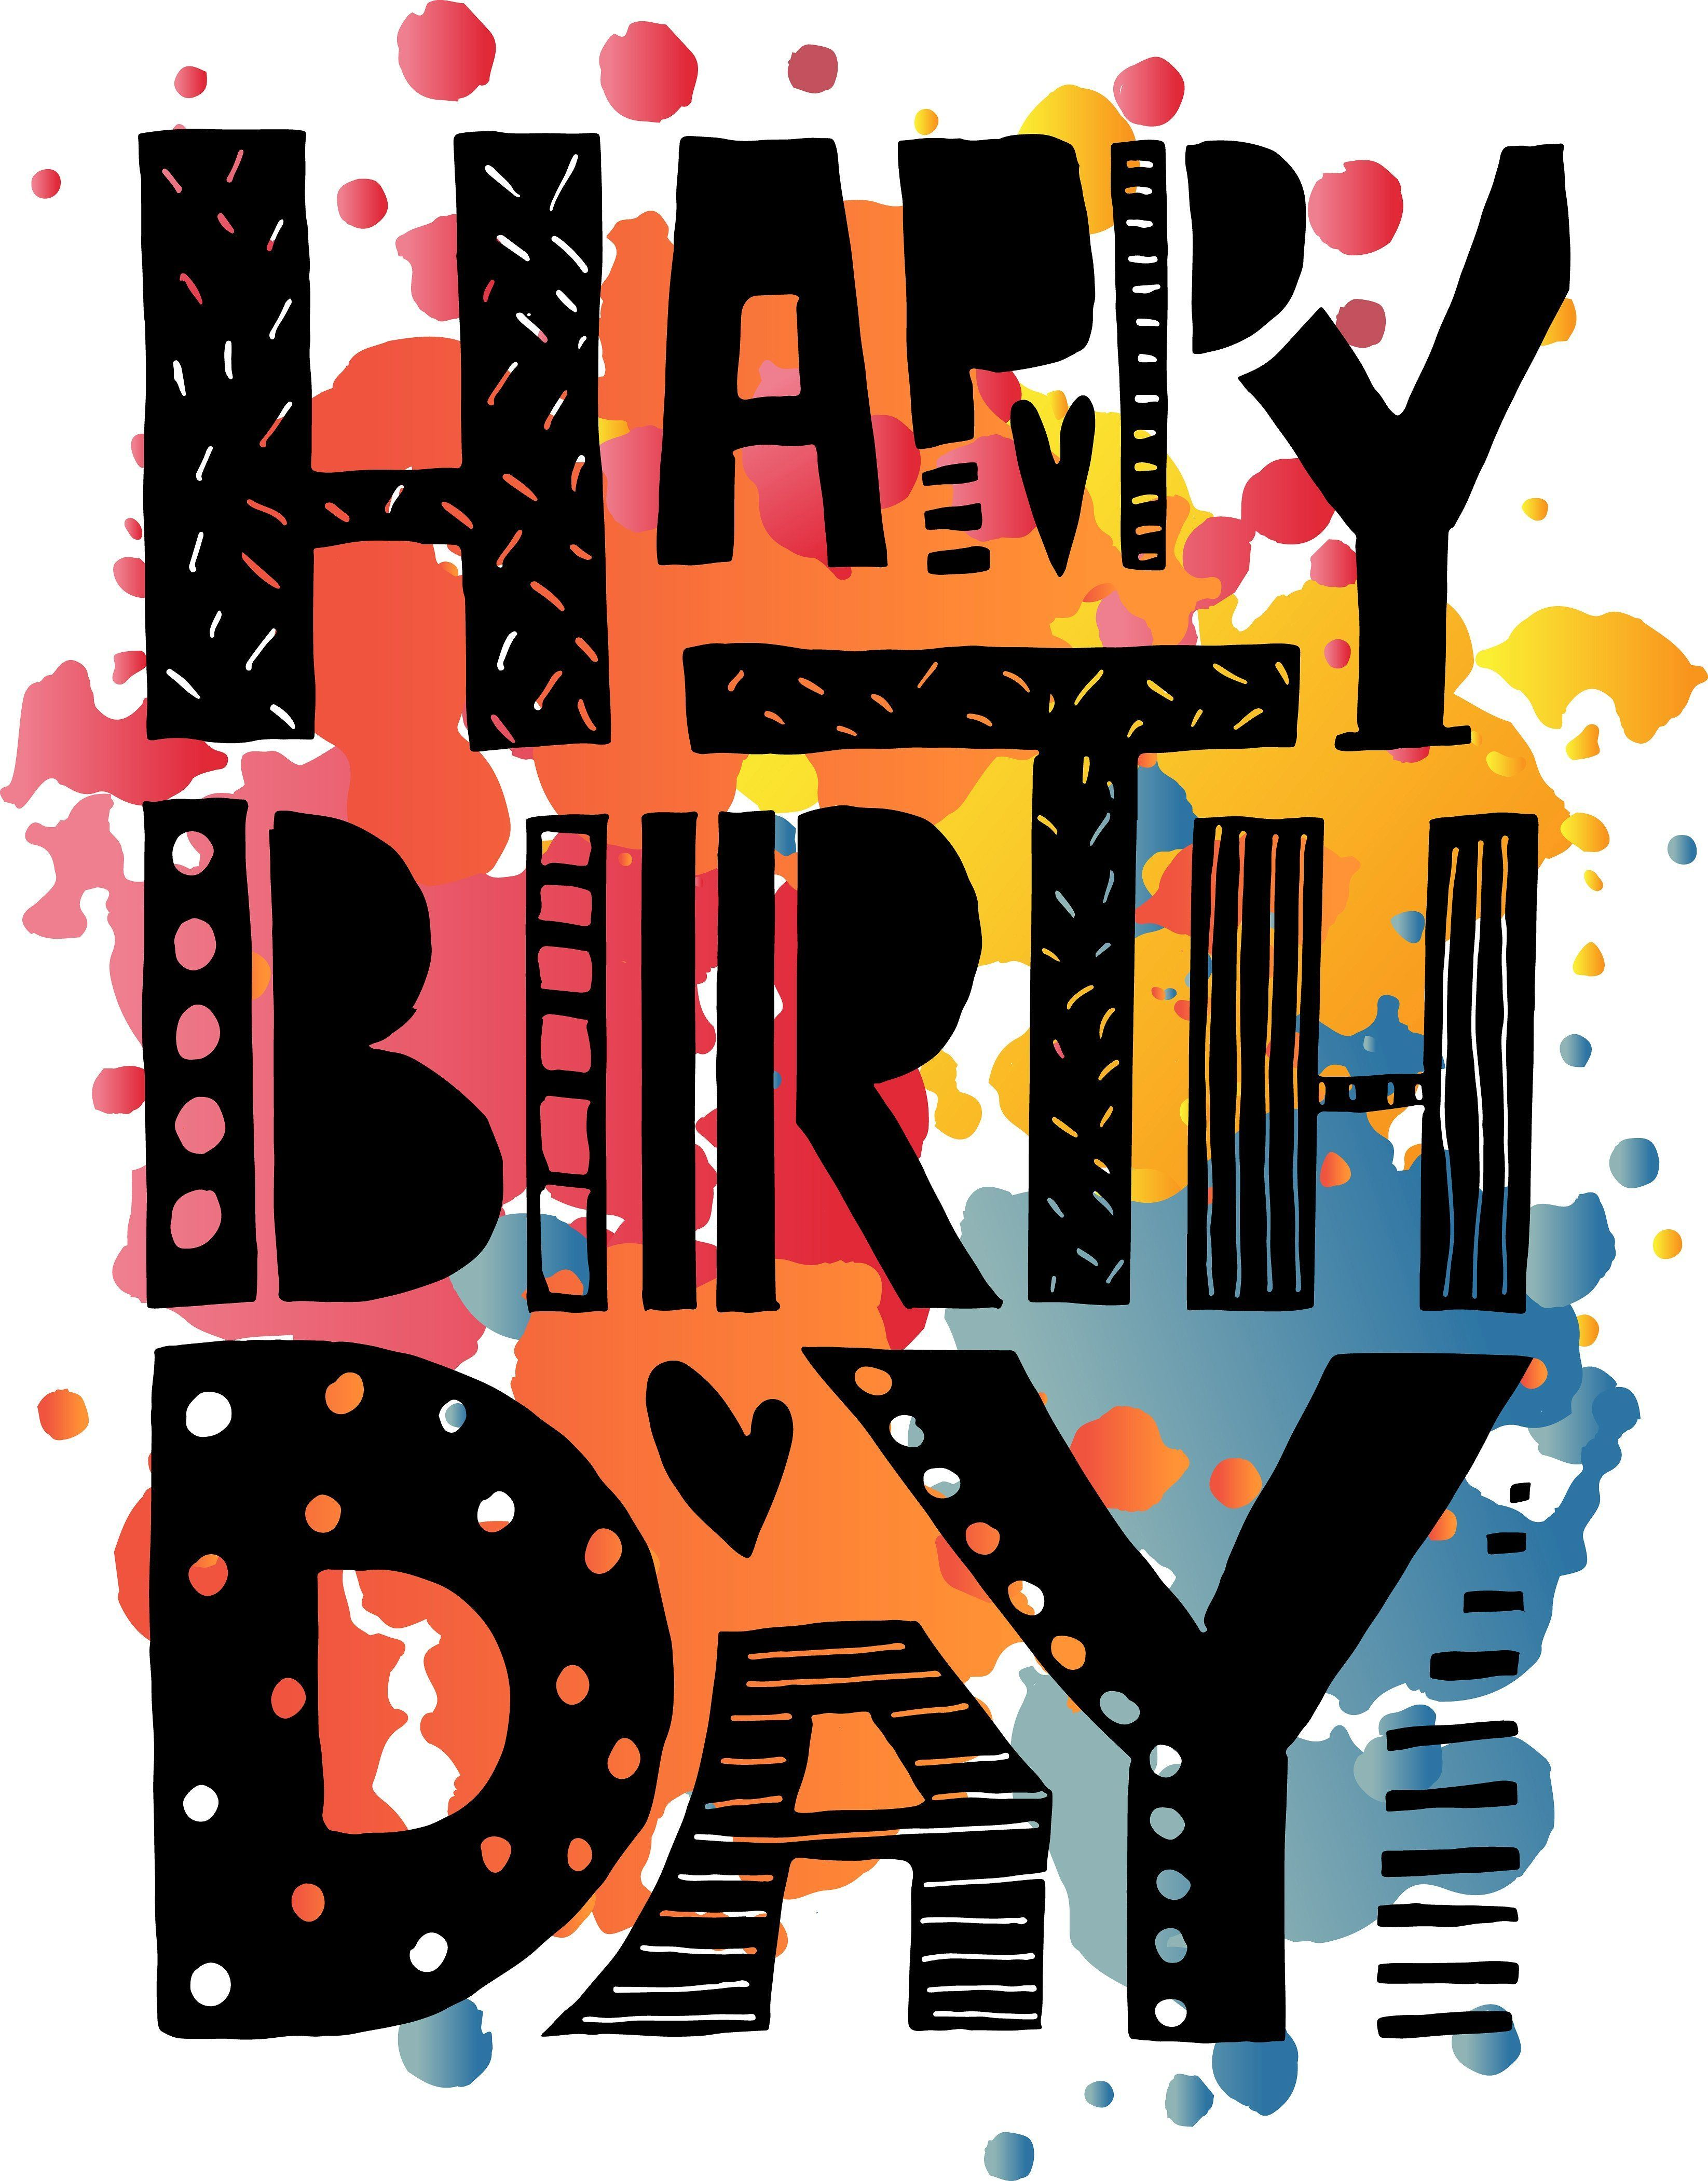 Happy Birthday Lettering By Truelettering On Creativemarket Happy Birthday Lettering Birthday Lettering Happy Birthday Wallpaper